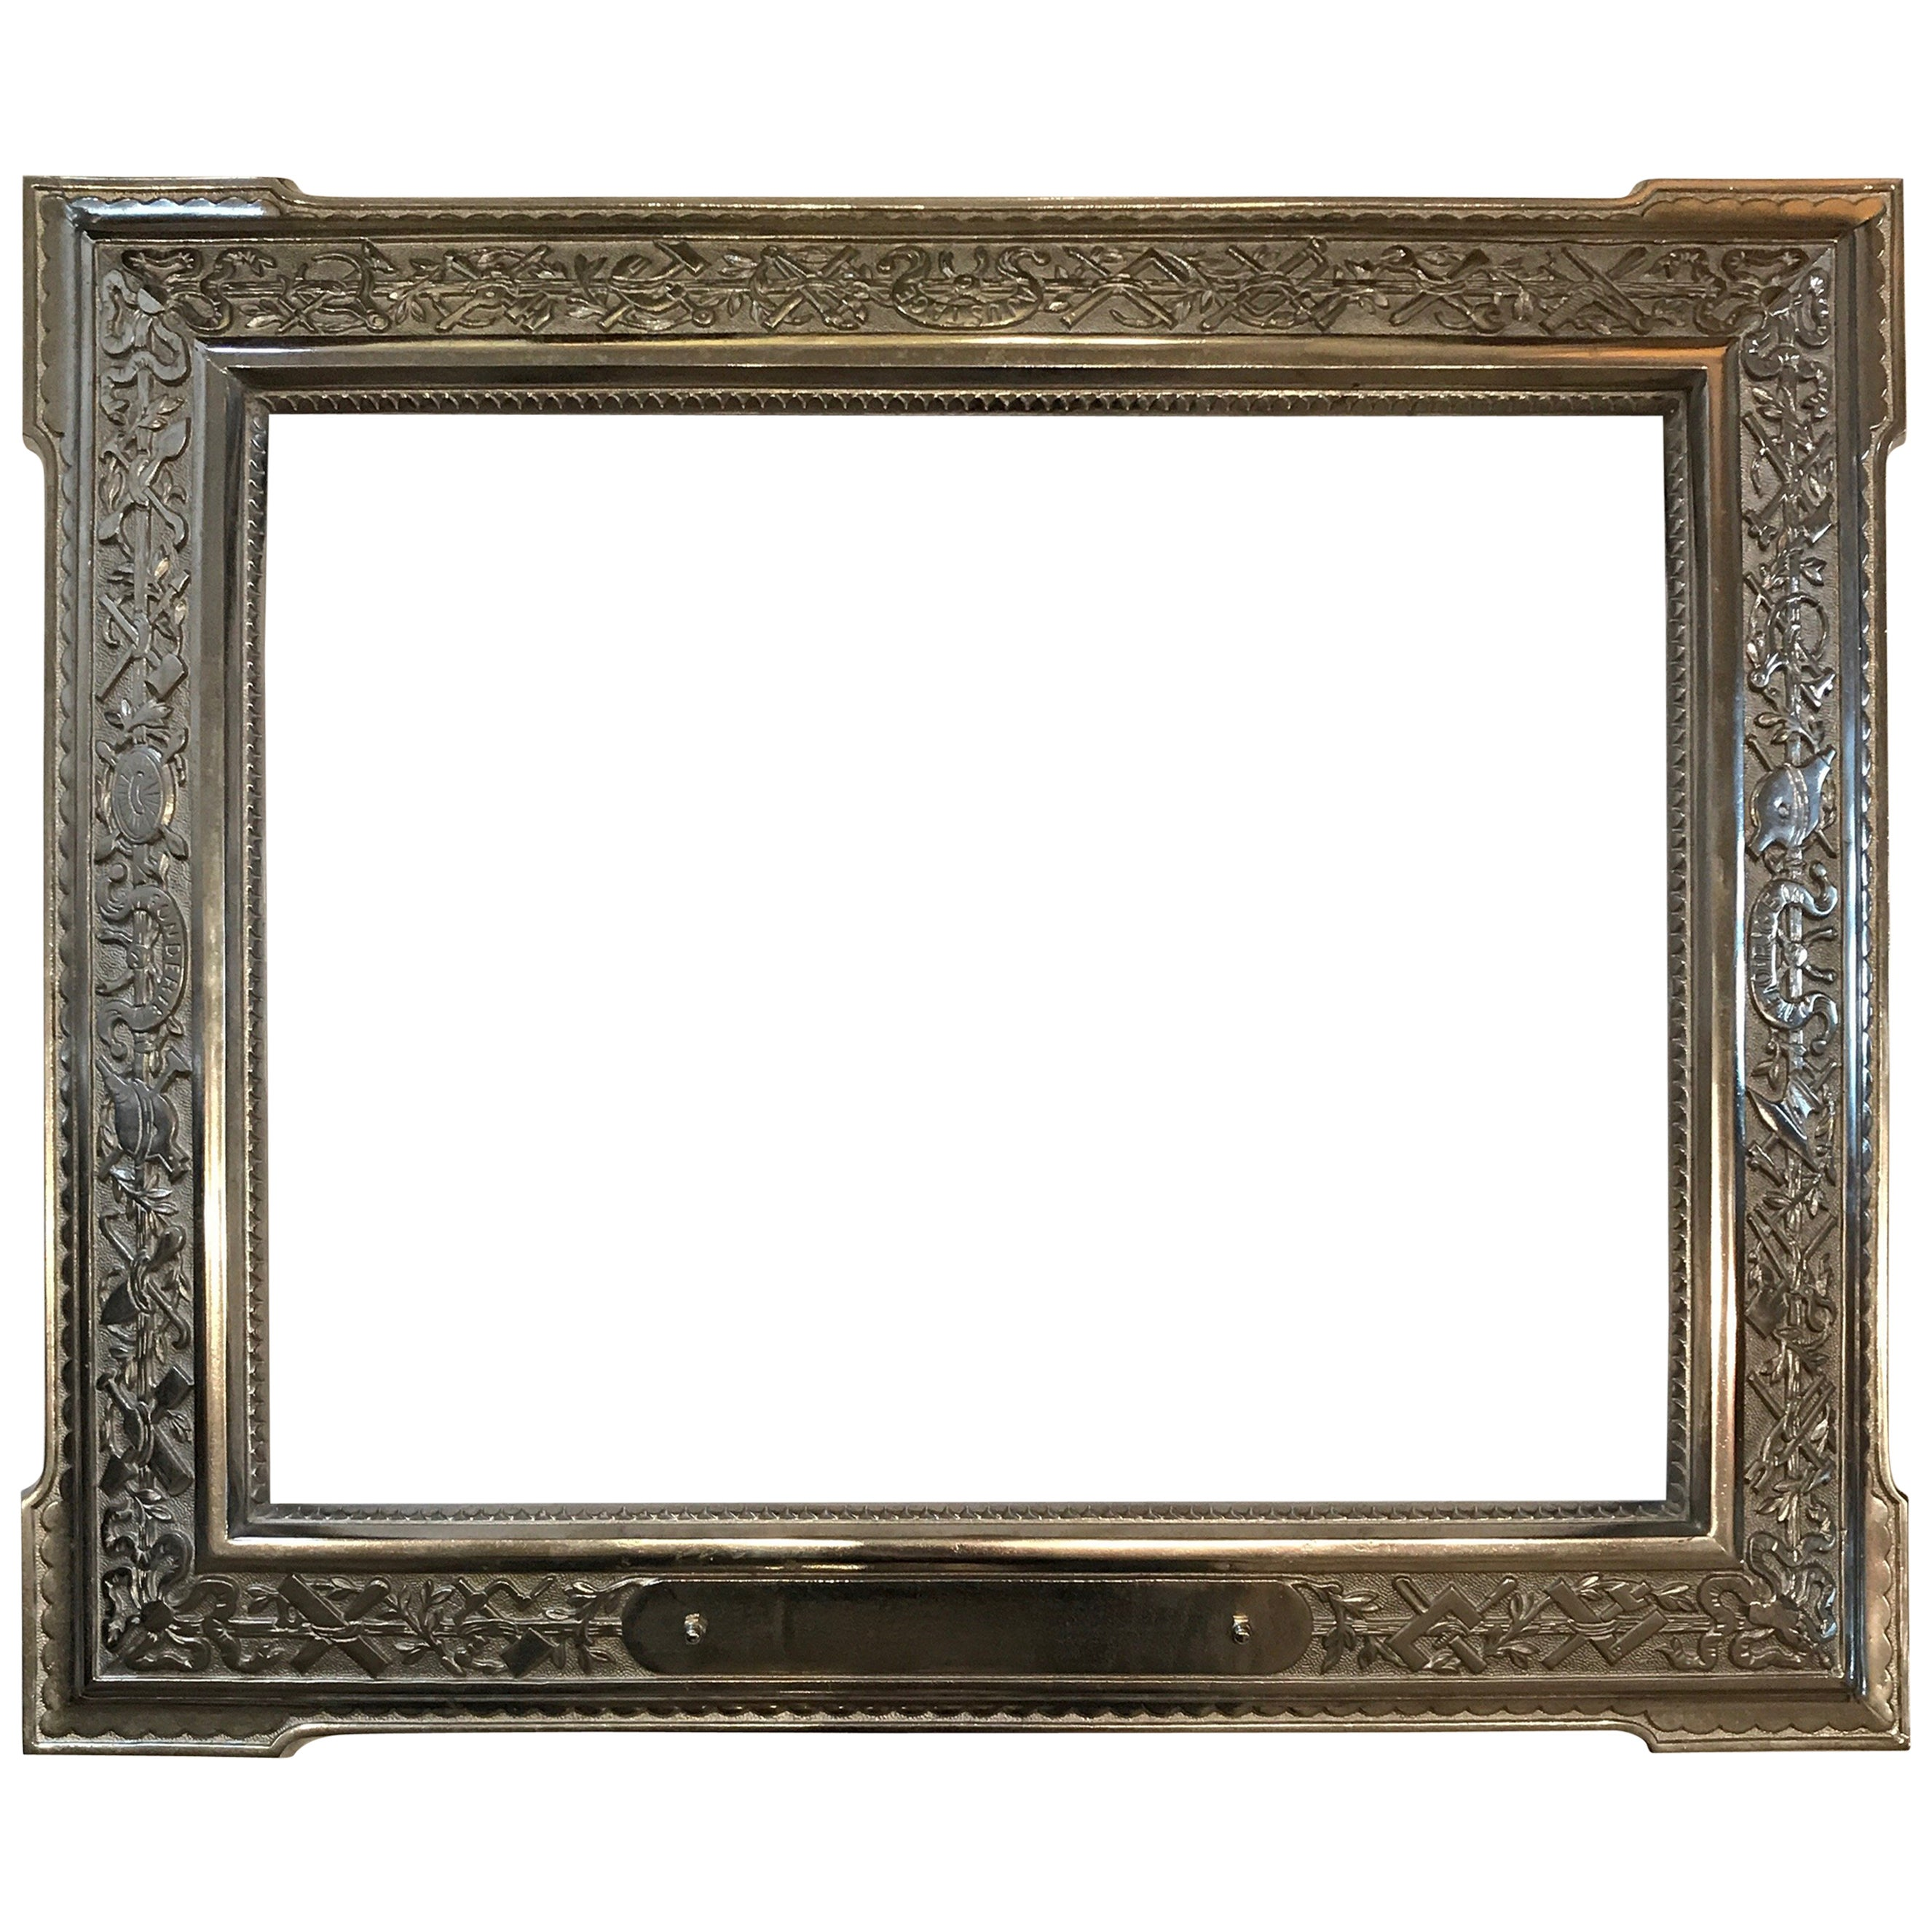 French 19th Century Nickle Foundry Picture Frame